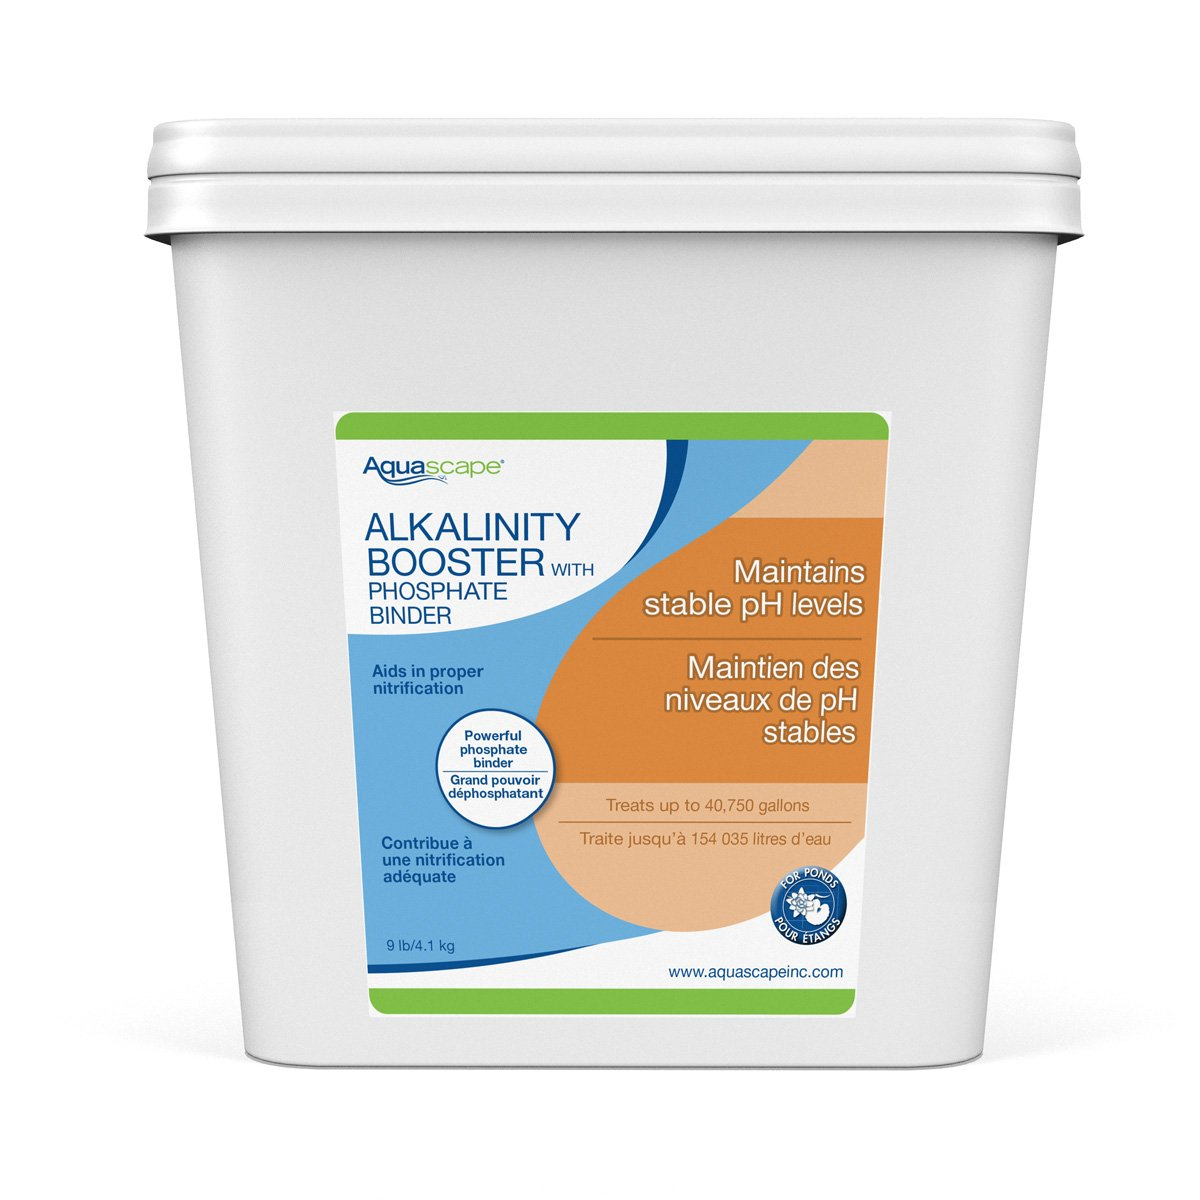 Aquascape Alkalinity Booster with Phosphate Binder for Pond Water, 9-Pound | 96028